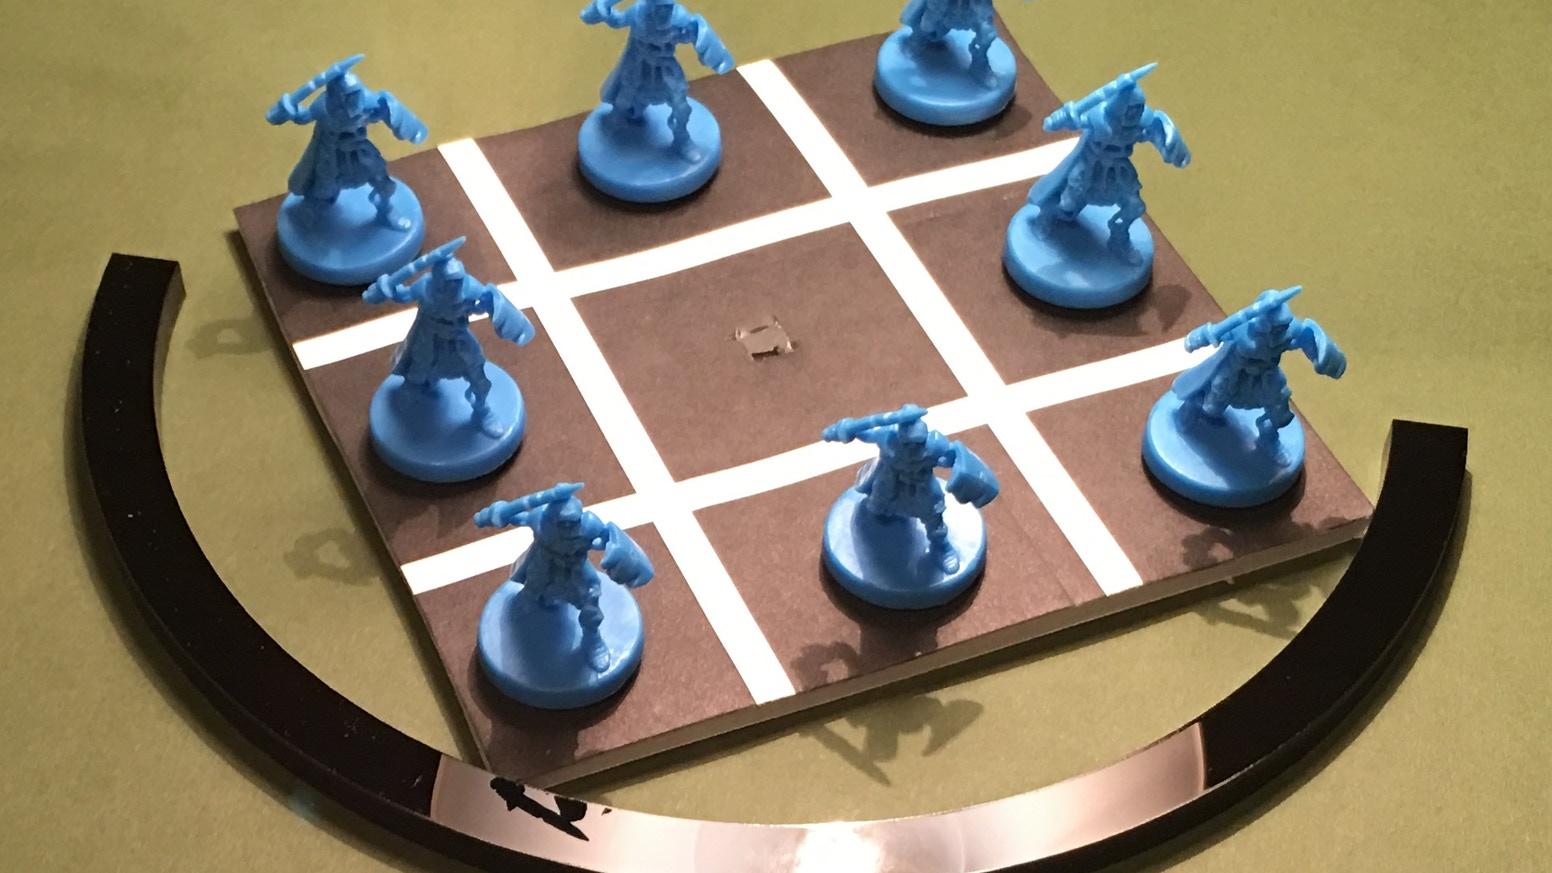 A precise movement tool for tabletop miniatures gaming, my pivoting arcs will help make your game experience accurate & hassle free! Visit us at peacekeepergames.net or on Facebook, and feel free to contact us at peacekeepergames@yahoo.com. Thanks!